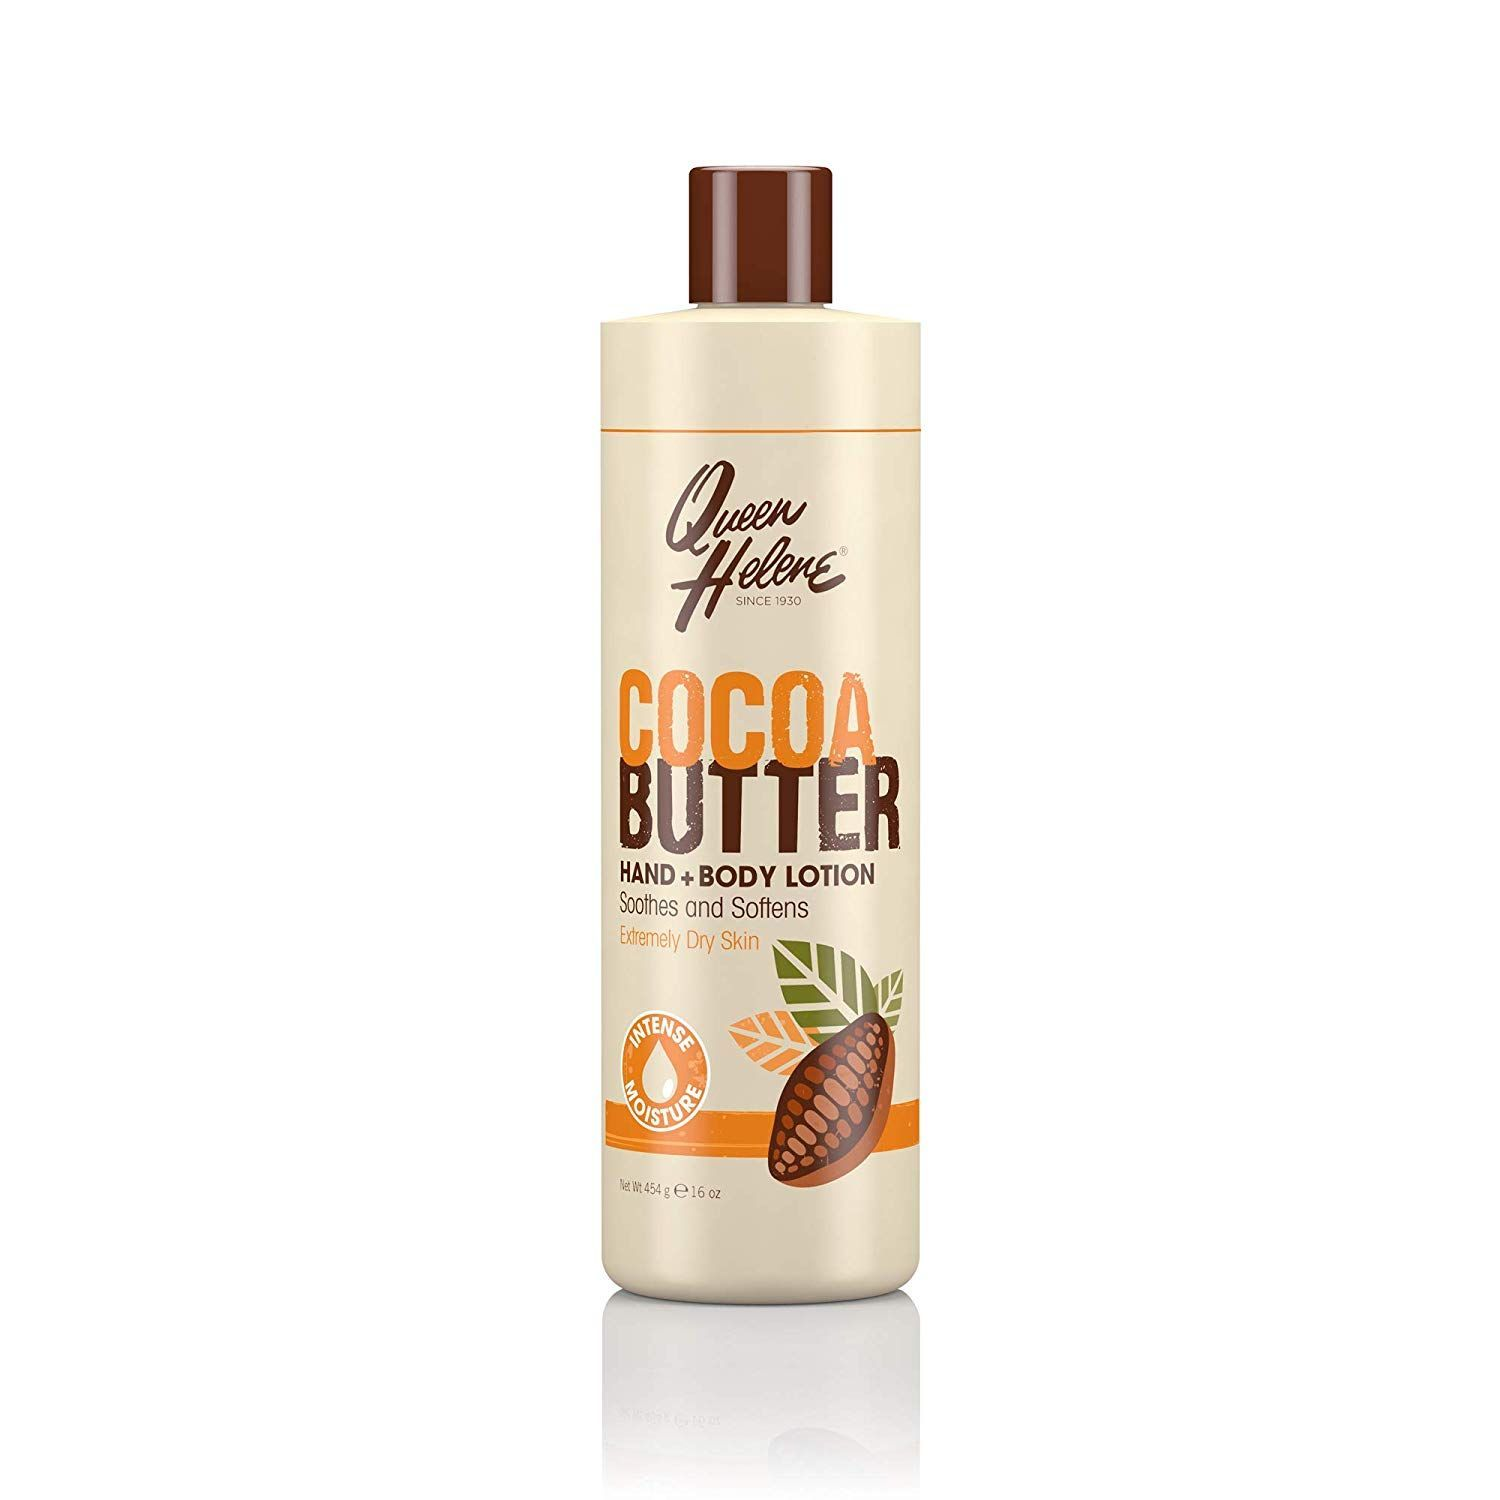 Queen Helene Cocoa Butter Hand & Body Lotion - 16oz